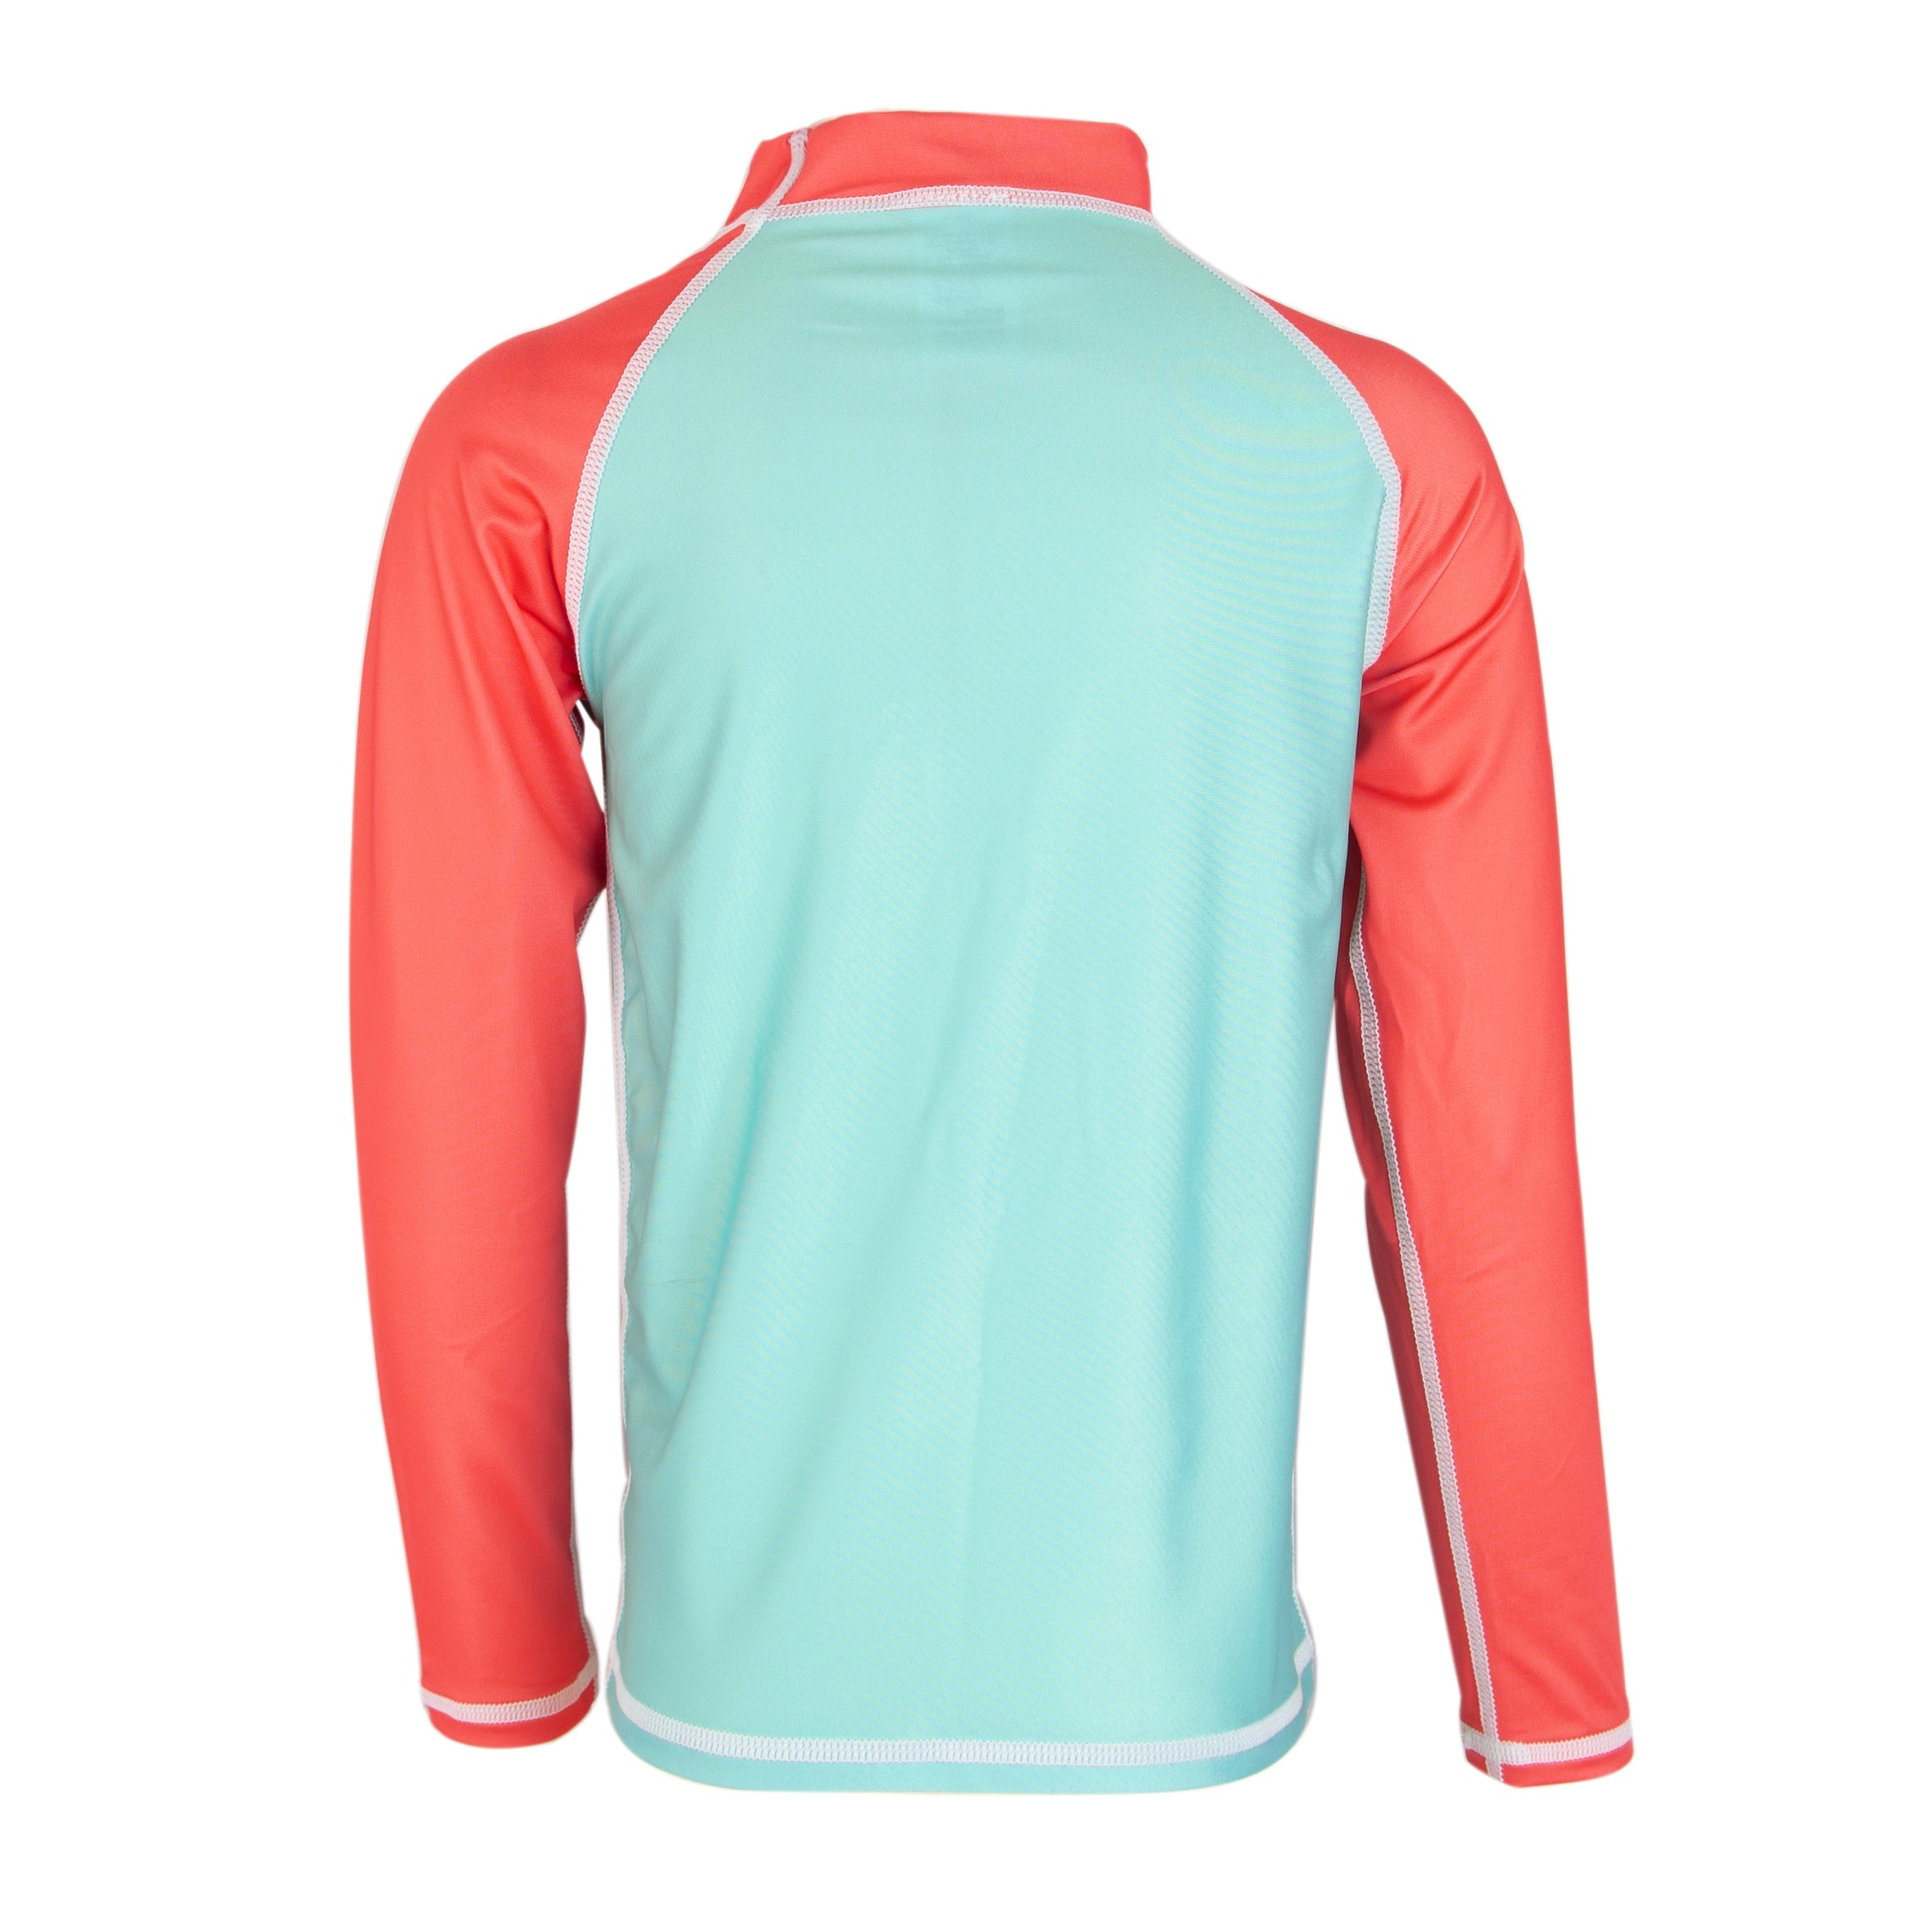 Mermaid Song Rash Guard